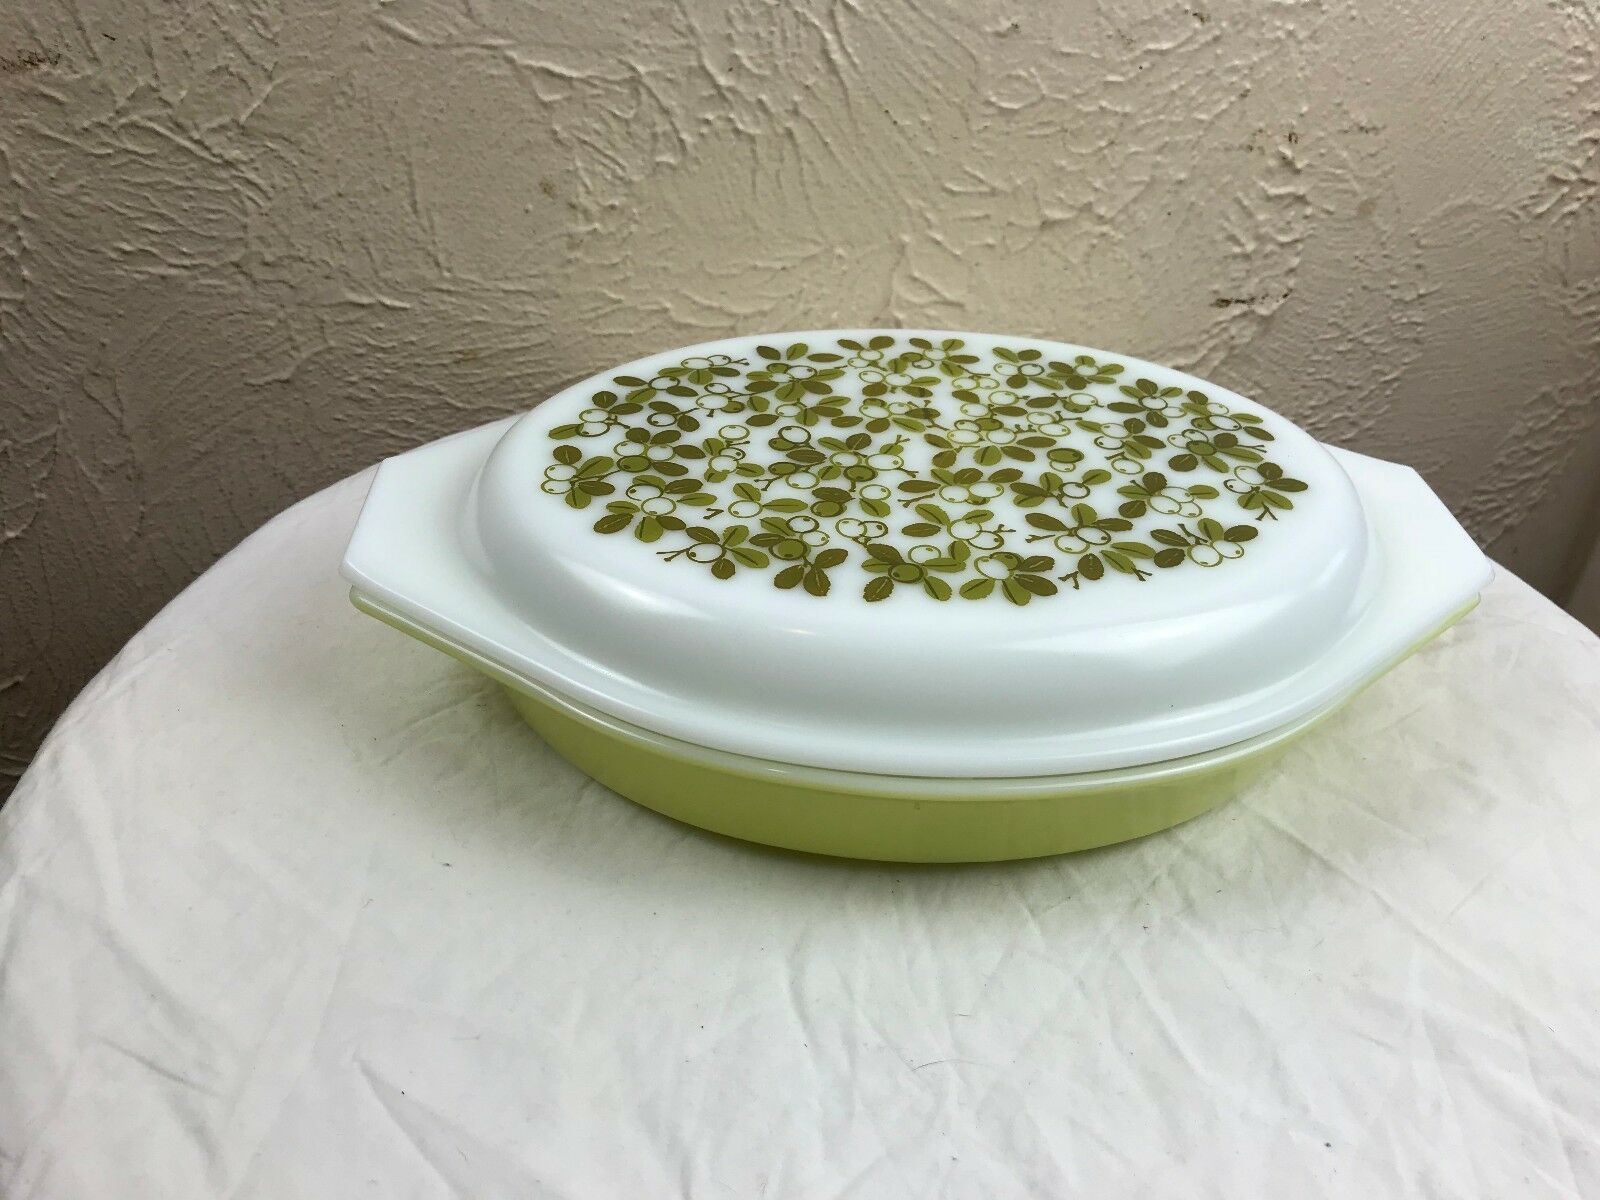 Pyrex Verde Green Olives 1 1/2 Qt Divided Casserole Dish with Lid Excellent